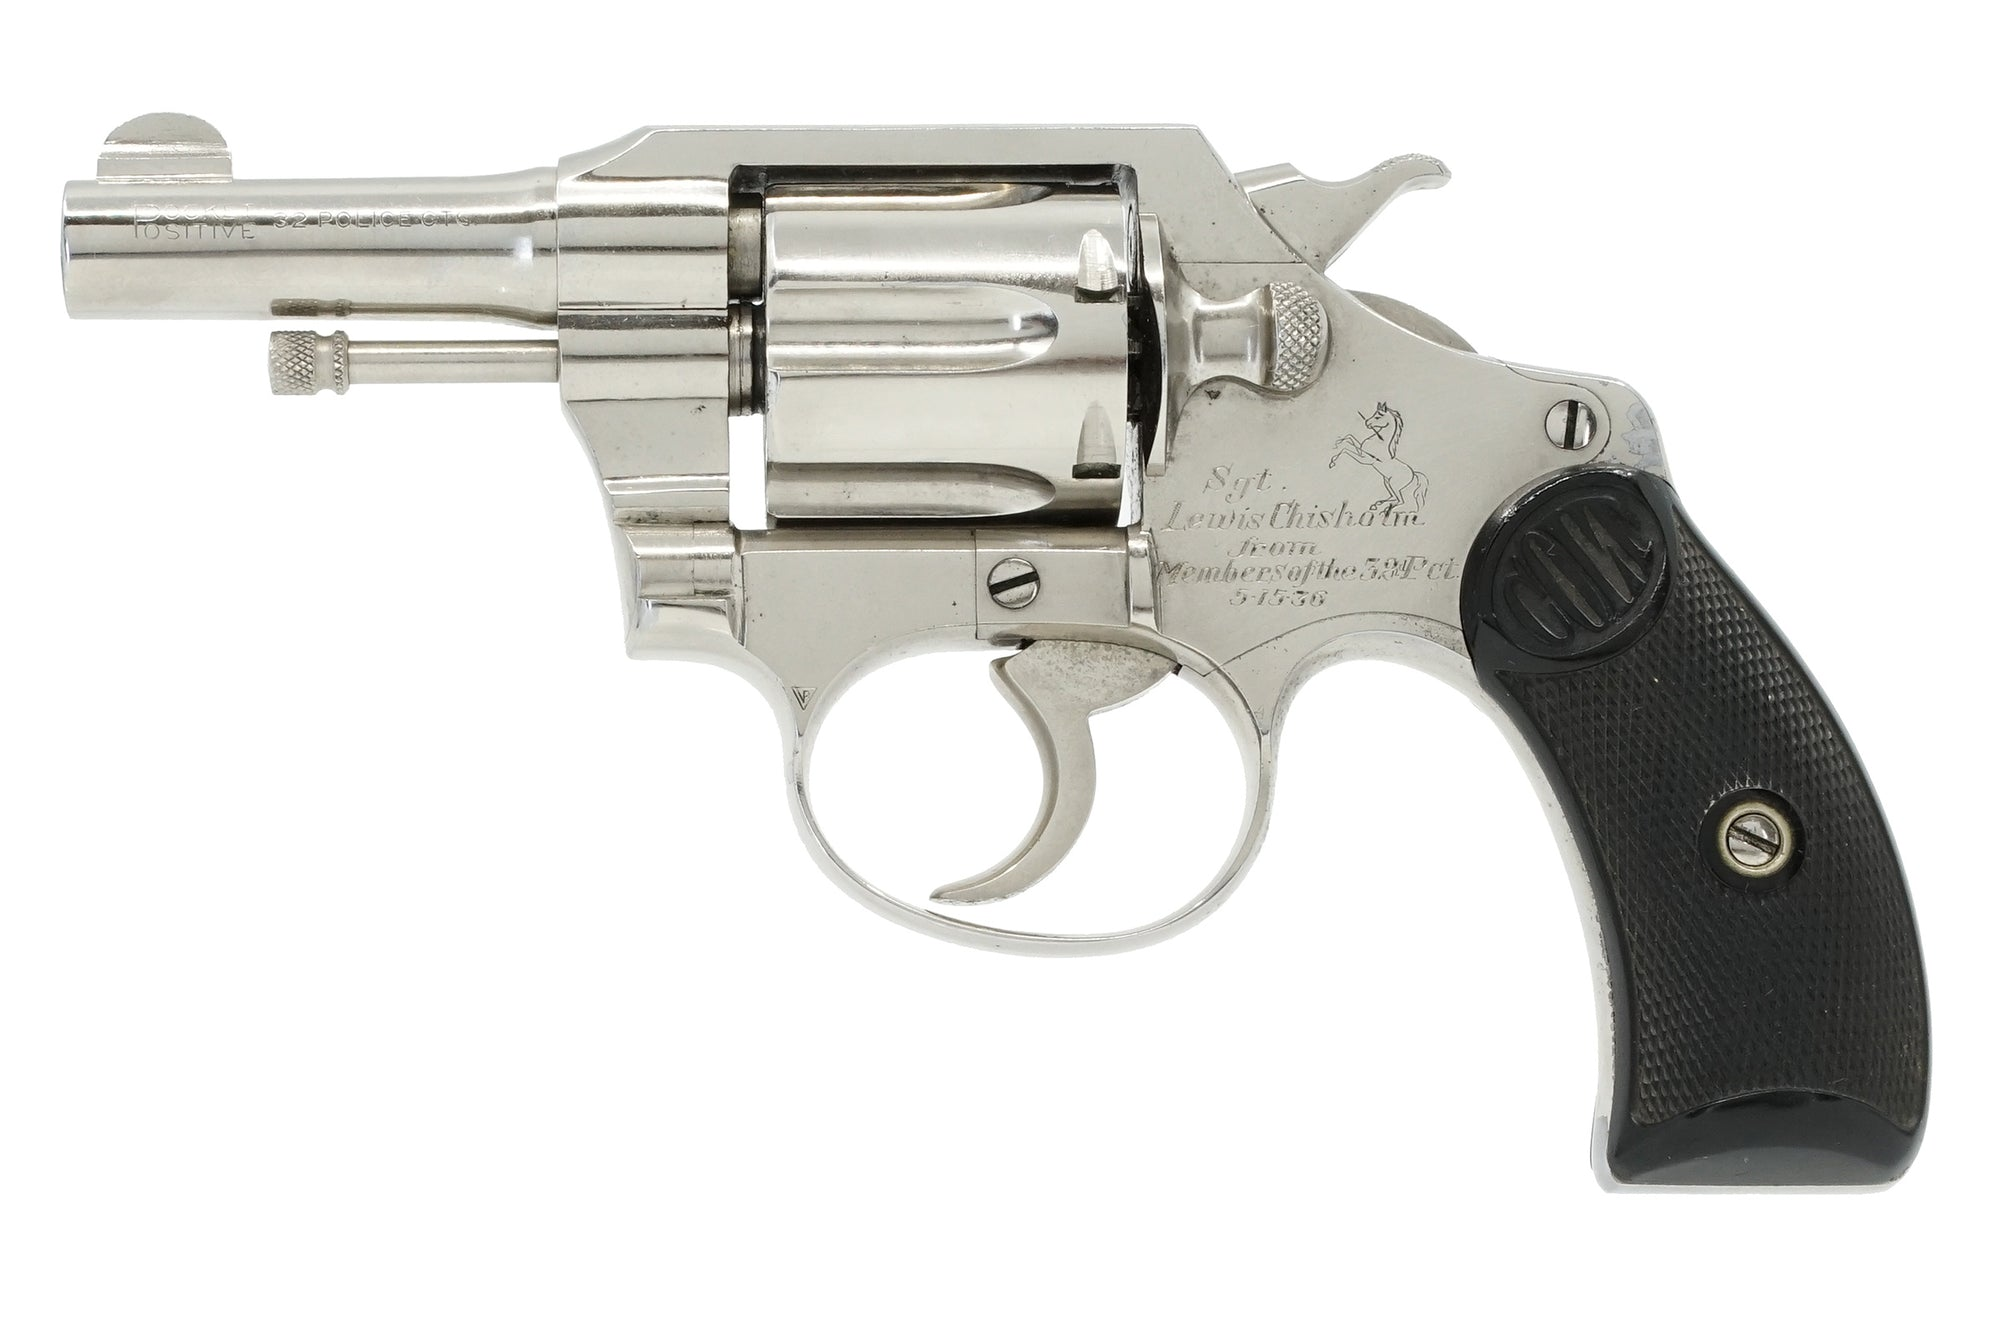 "Colt Pocket Positive 2.5"" 32CTG SN:155877 MFG:1936 - Sgt. Chisholm"